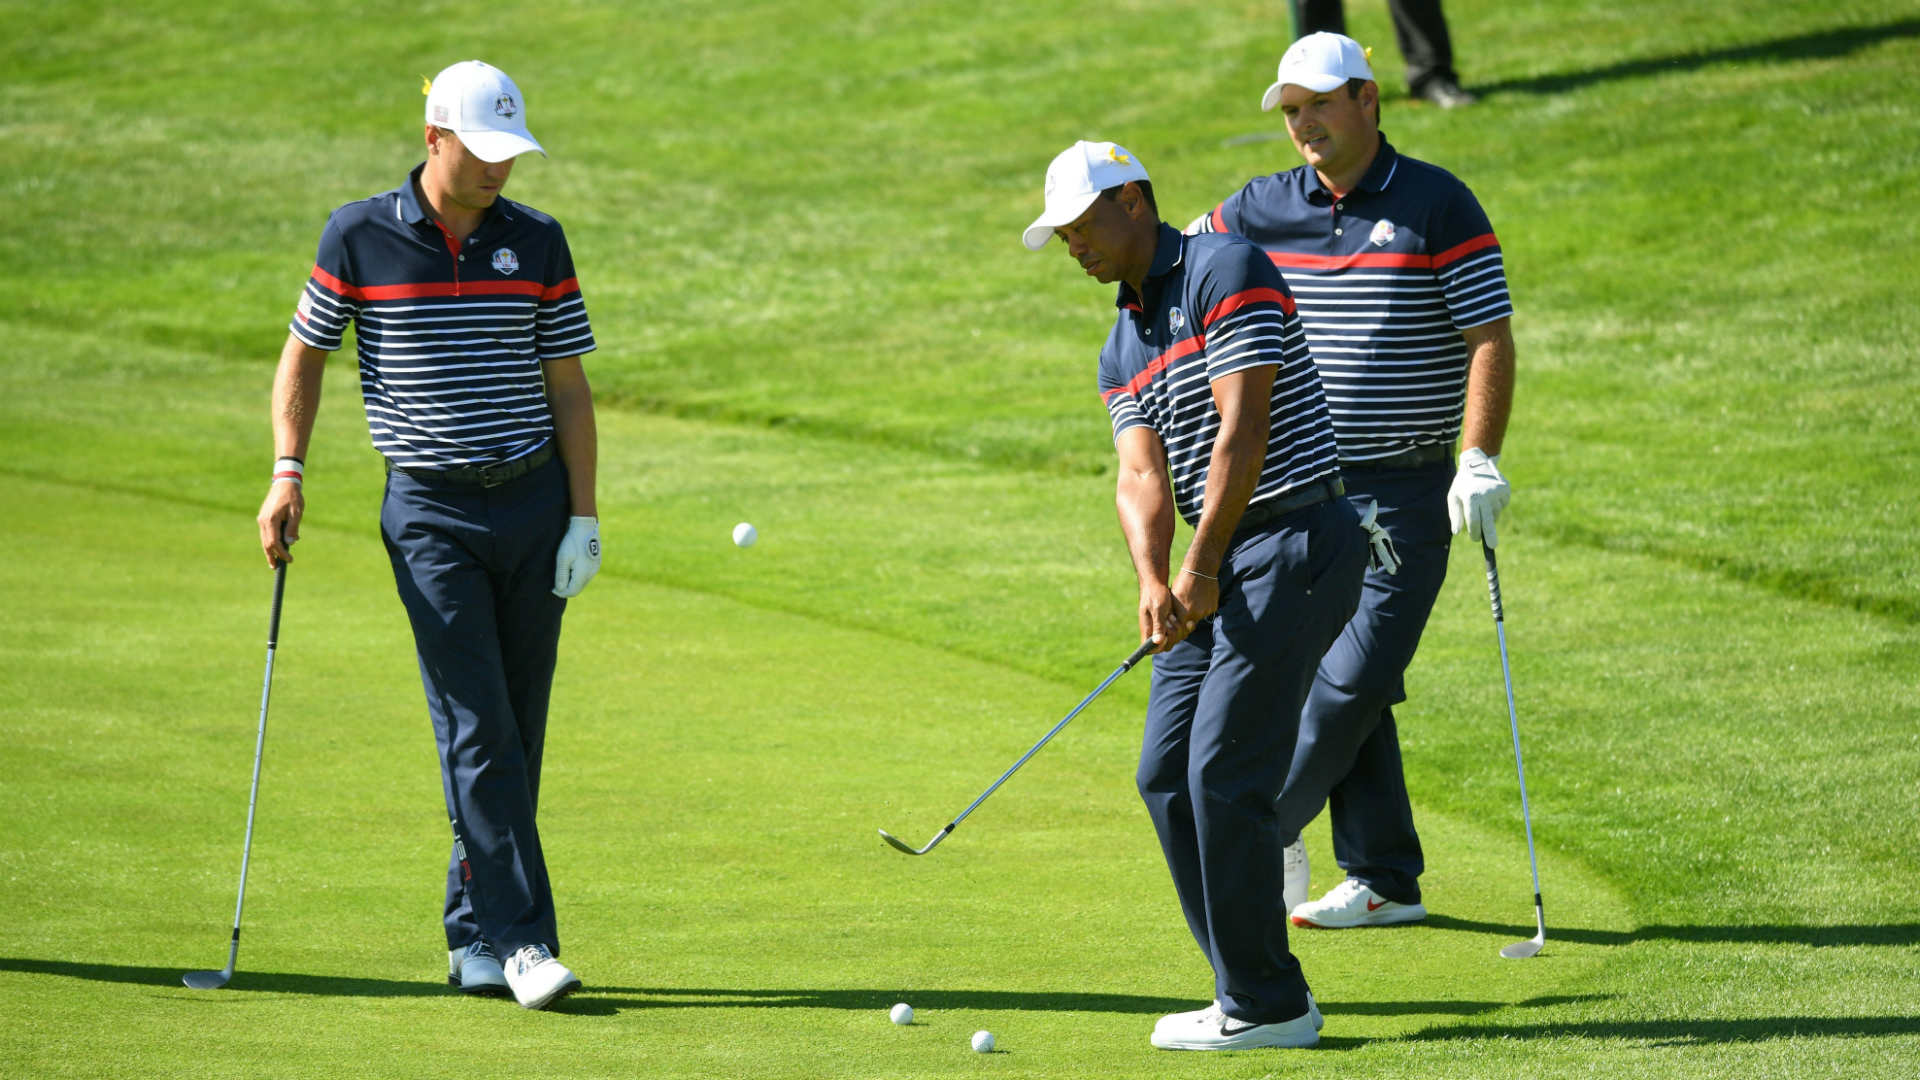 Jim Furyk confirms Dustin Johnson-Brooks Koepka Ryder Cup spat